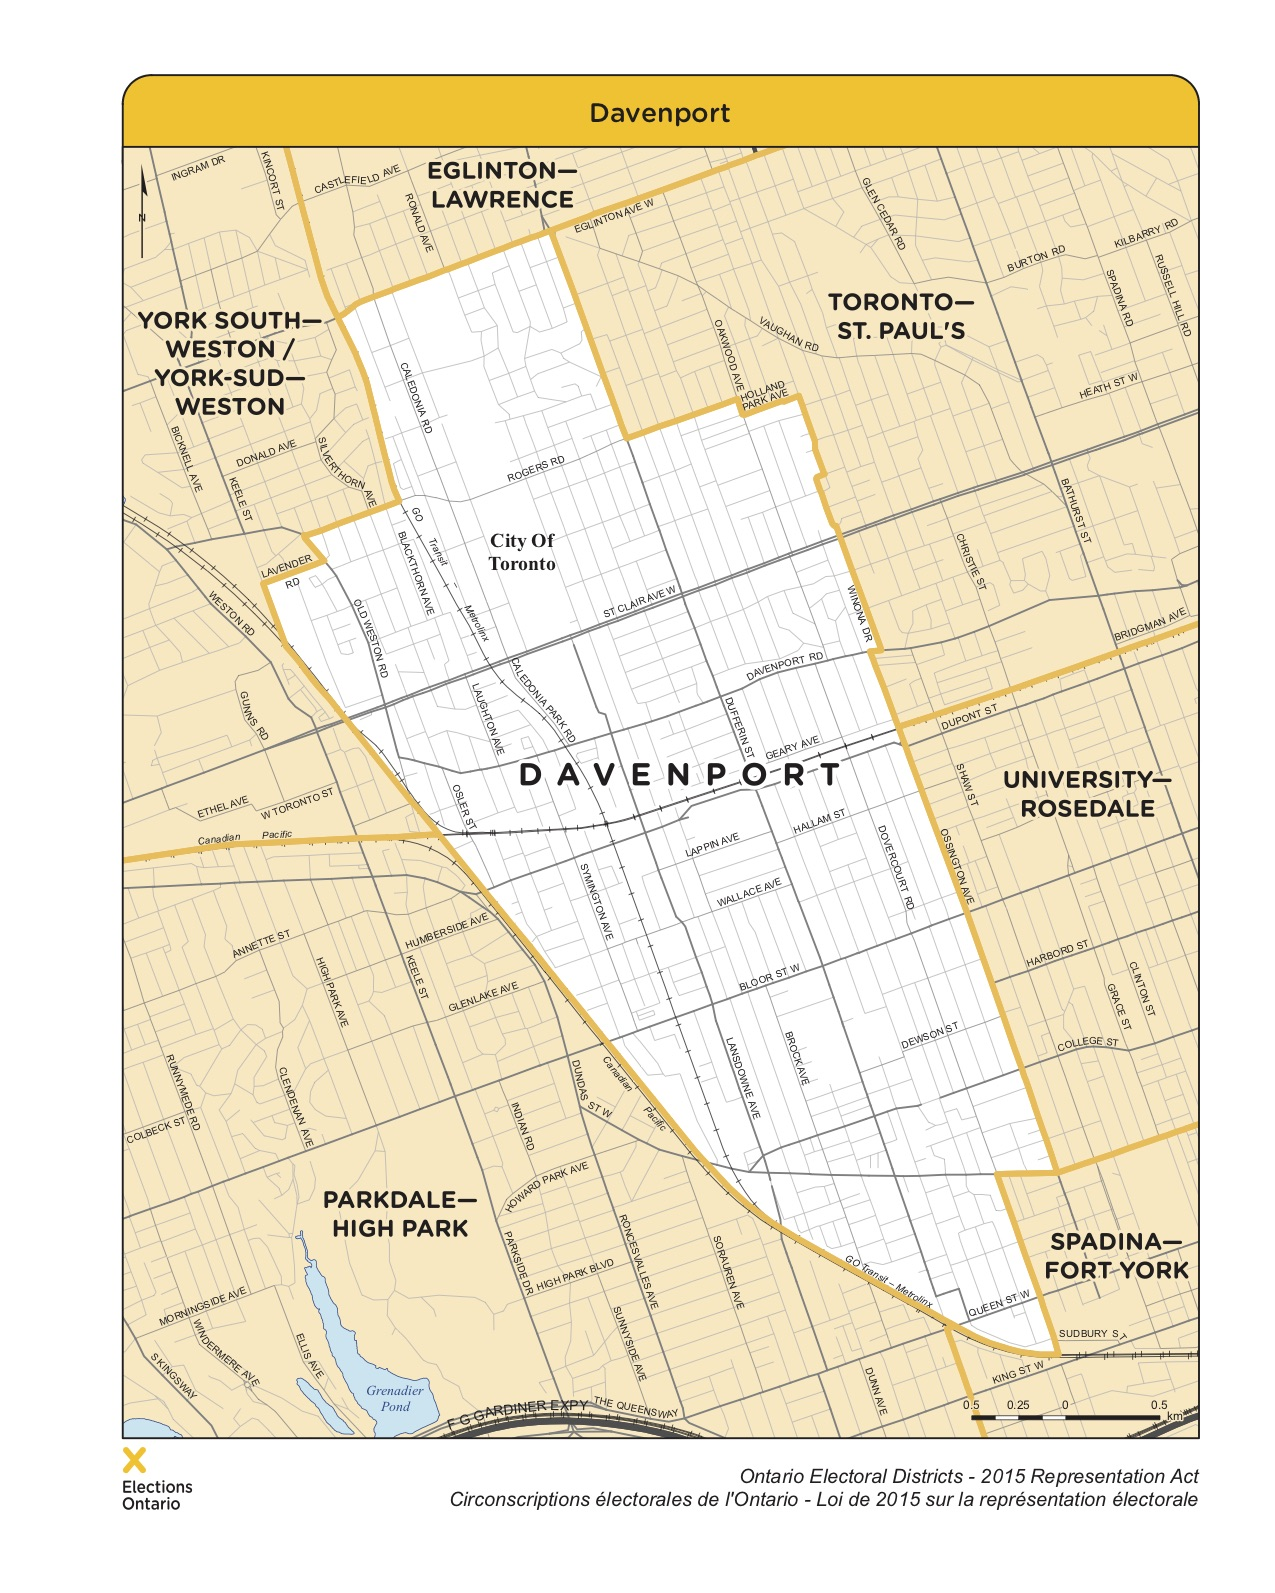 Map of Davenport